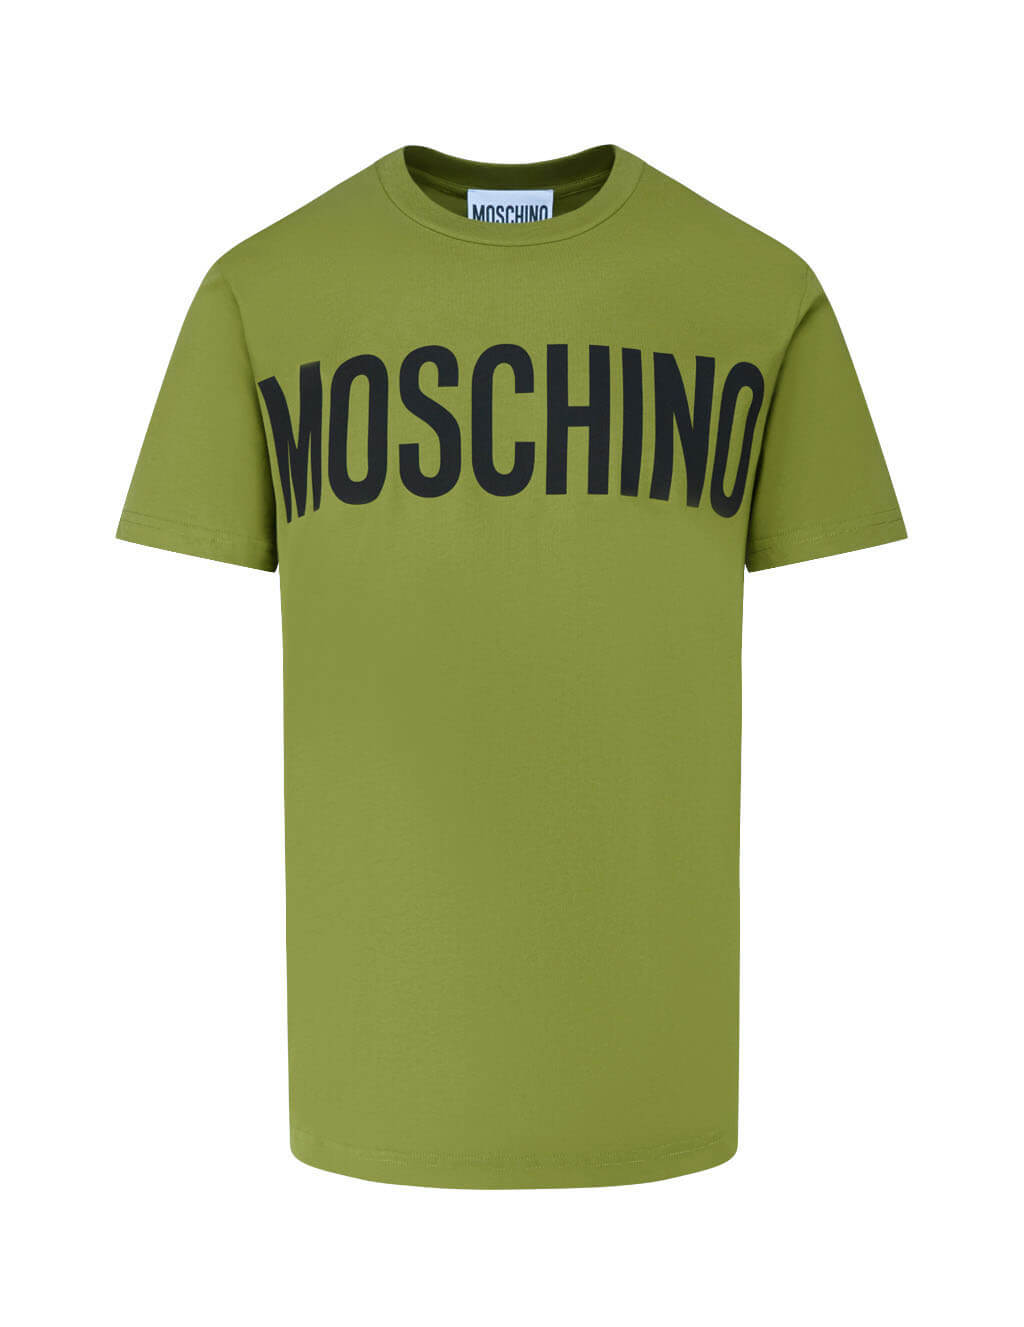 Men's Green Moschino Classic Logo T-Shirt J070570401413